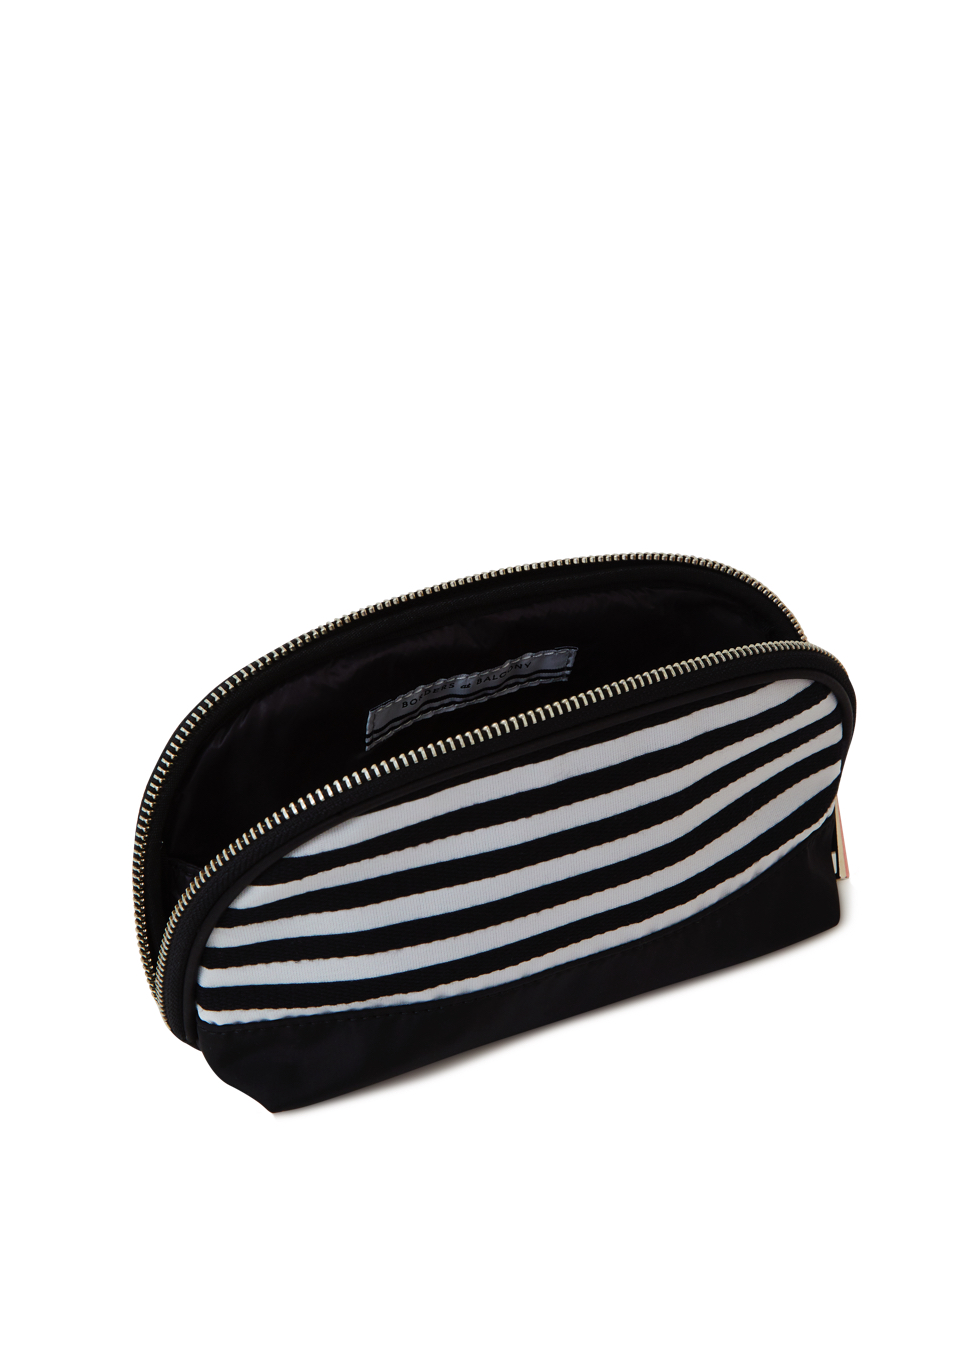 BORDER MAKE UP POUCH